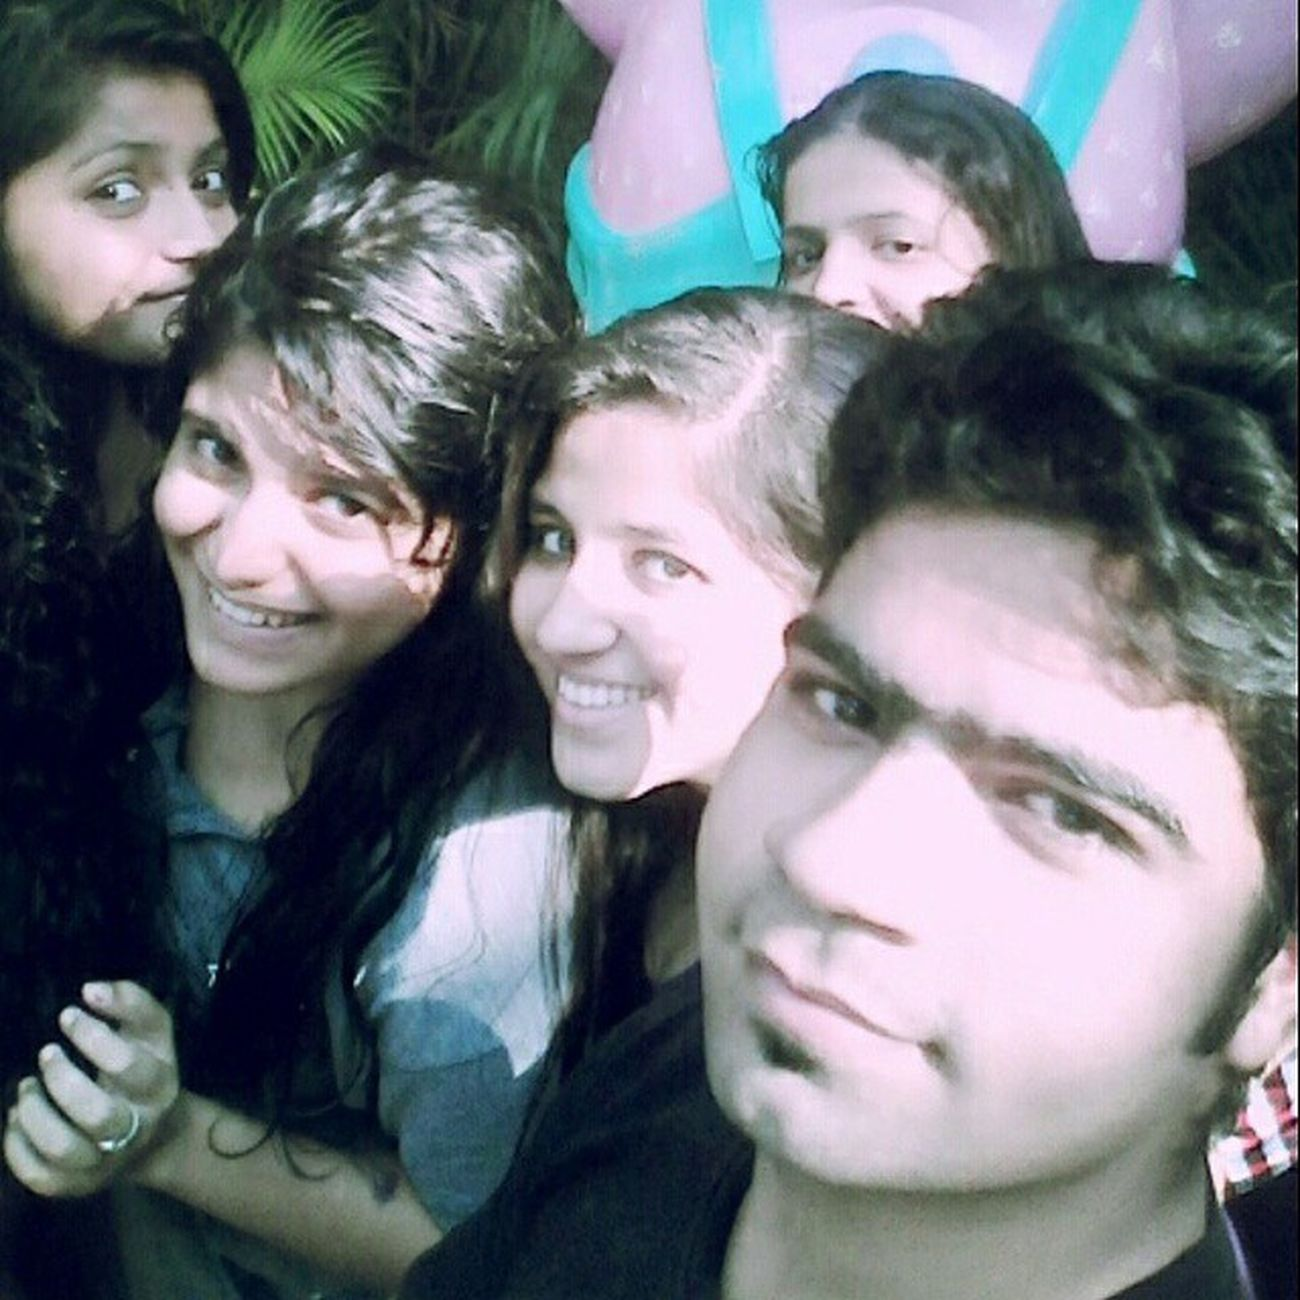 Life is more beautiful wen u smile 😊 Friends💛 Fun💕 Memorableday 😎